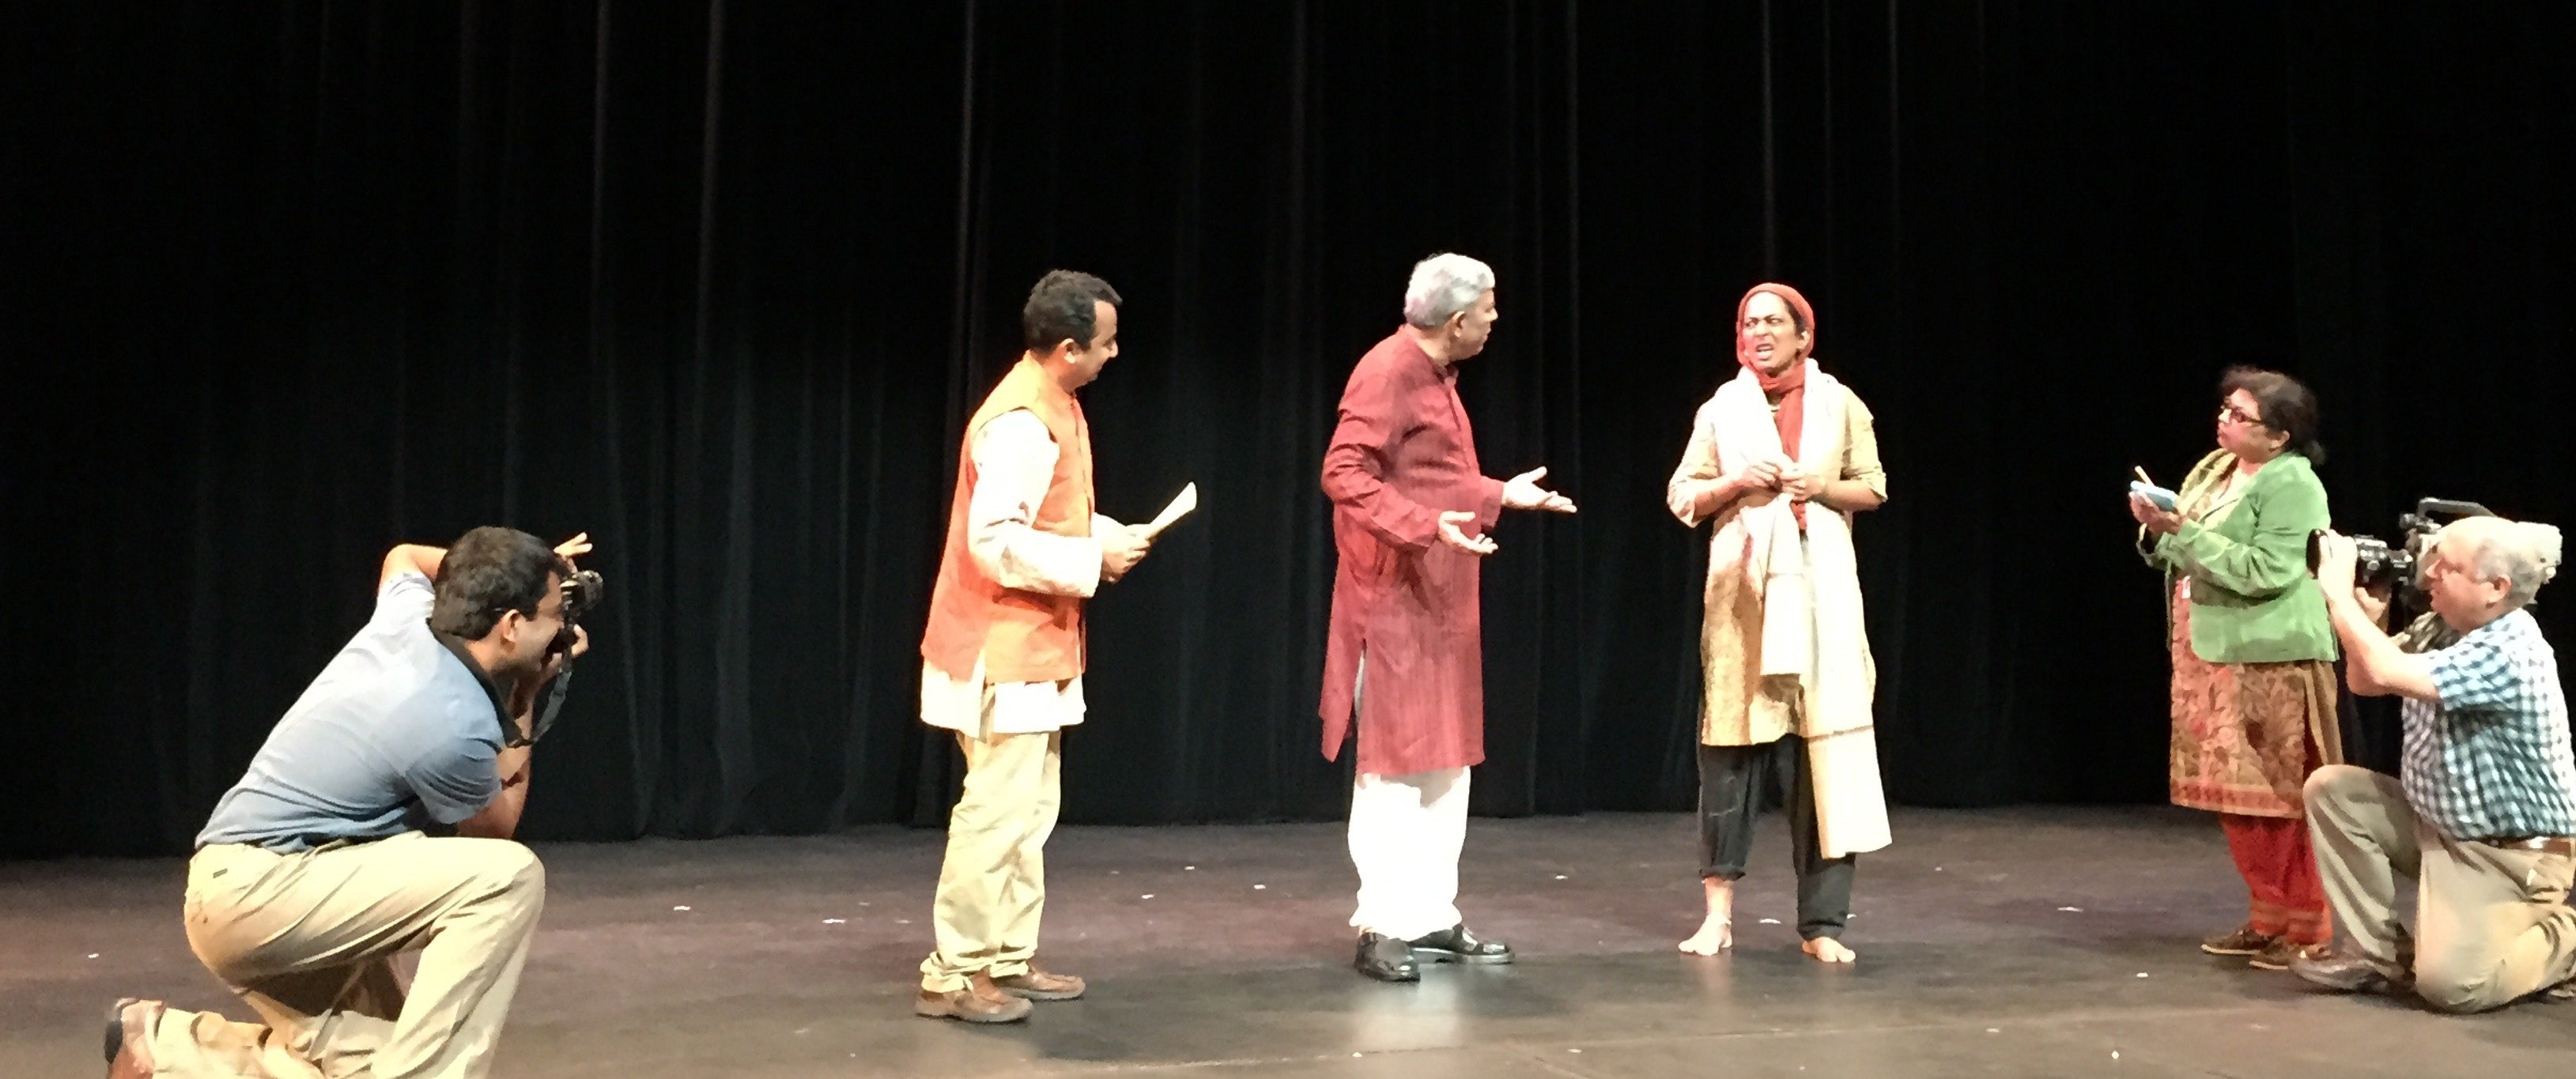 """Why Bhopal?"" – A spoiler-free review of the play, BHOPAL by the Bay Area Drama Company"